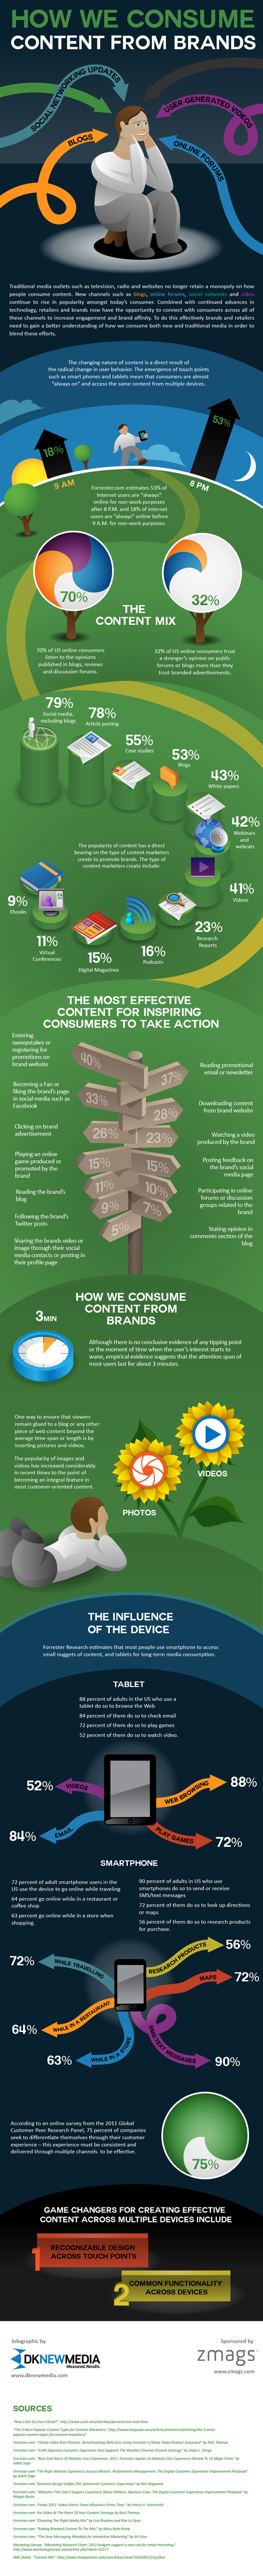 What Is The Most Effective Content For Brand Marketing? A: UGC #infographic | AtDotCom Social media | Scoop.it